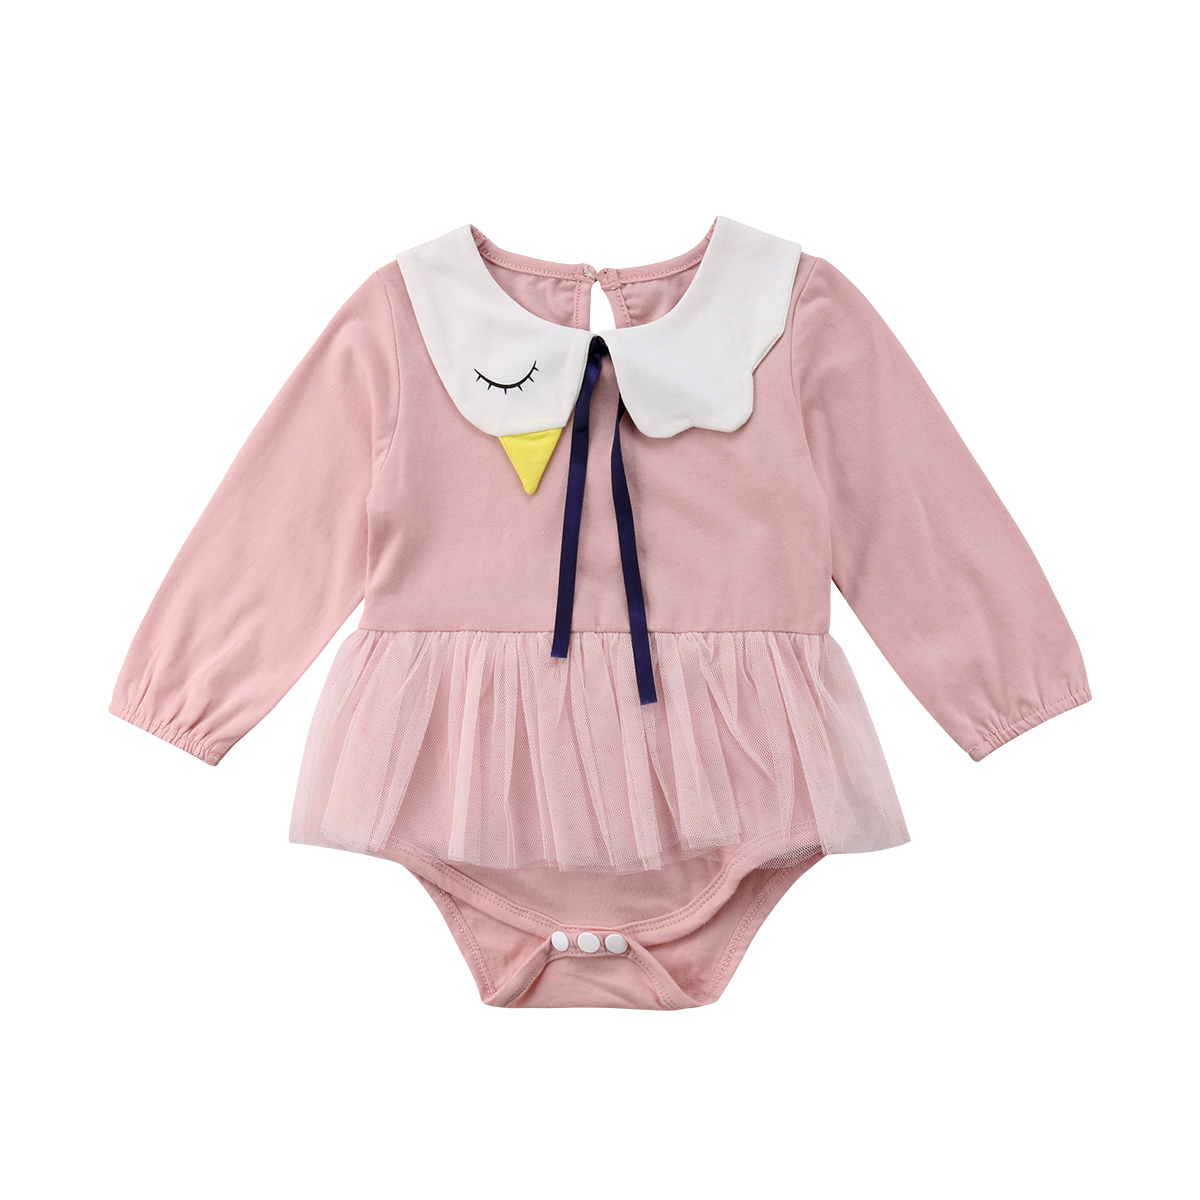 Newborn Toddler Baby Girls Lace Tutu Dress Long Sleeve Bodysuit Jumpsuit Collar Cute Outfit Clothes Baby Girl 0-24M